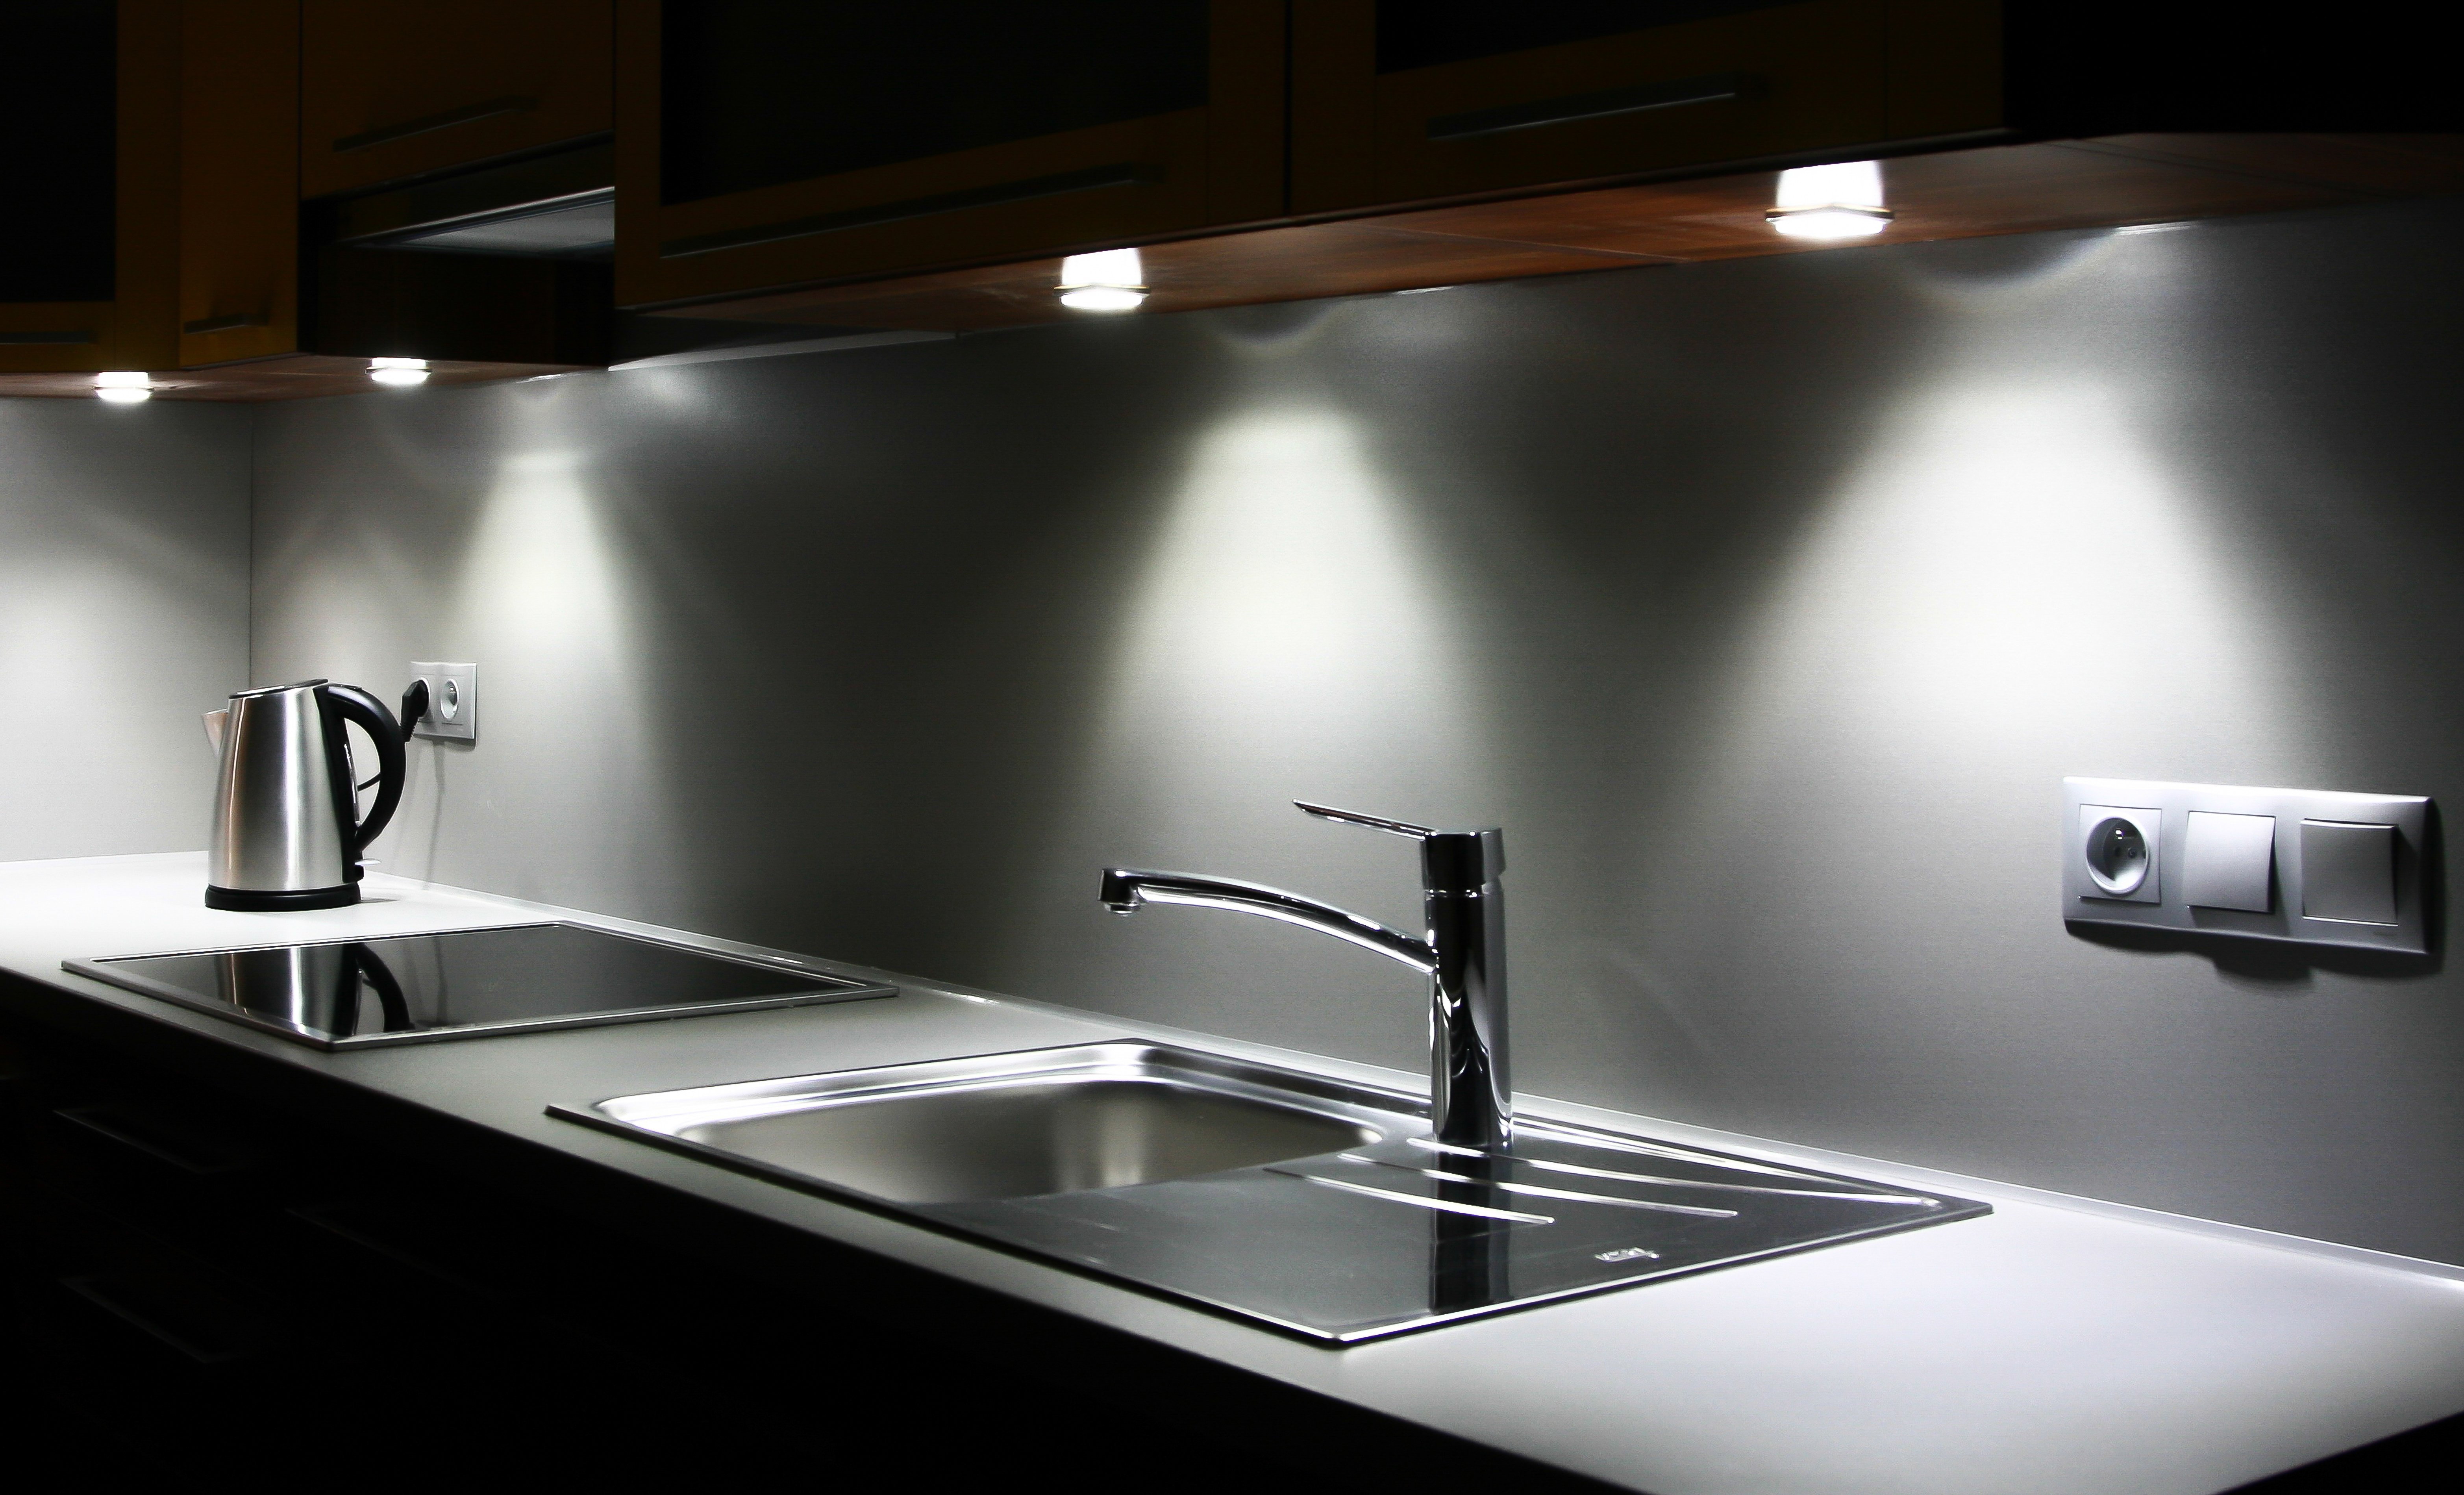 Kitchen counters   Source: Shutterstock